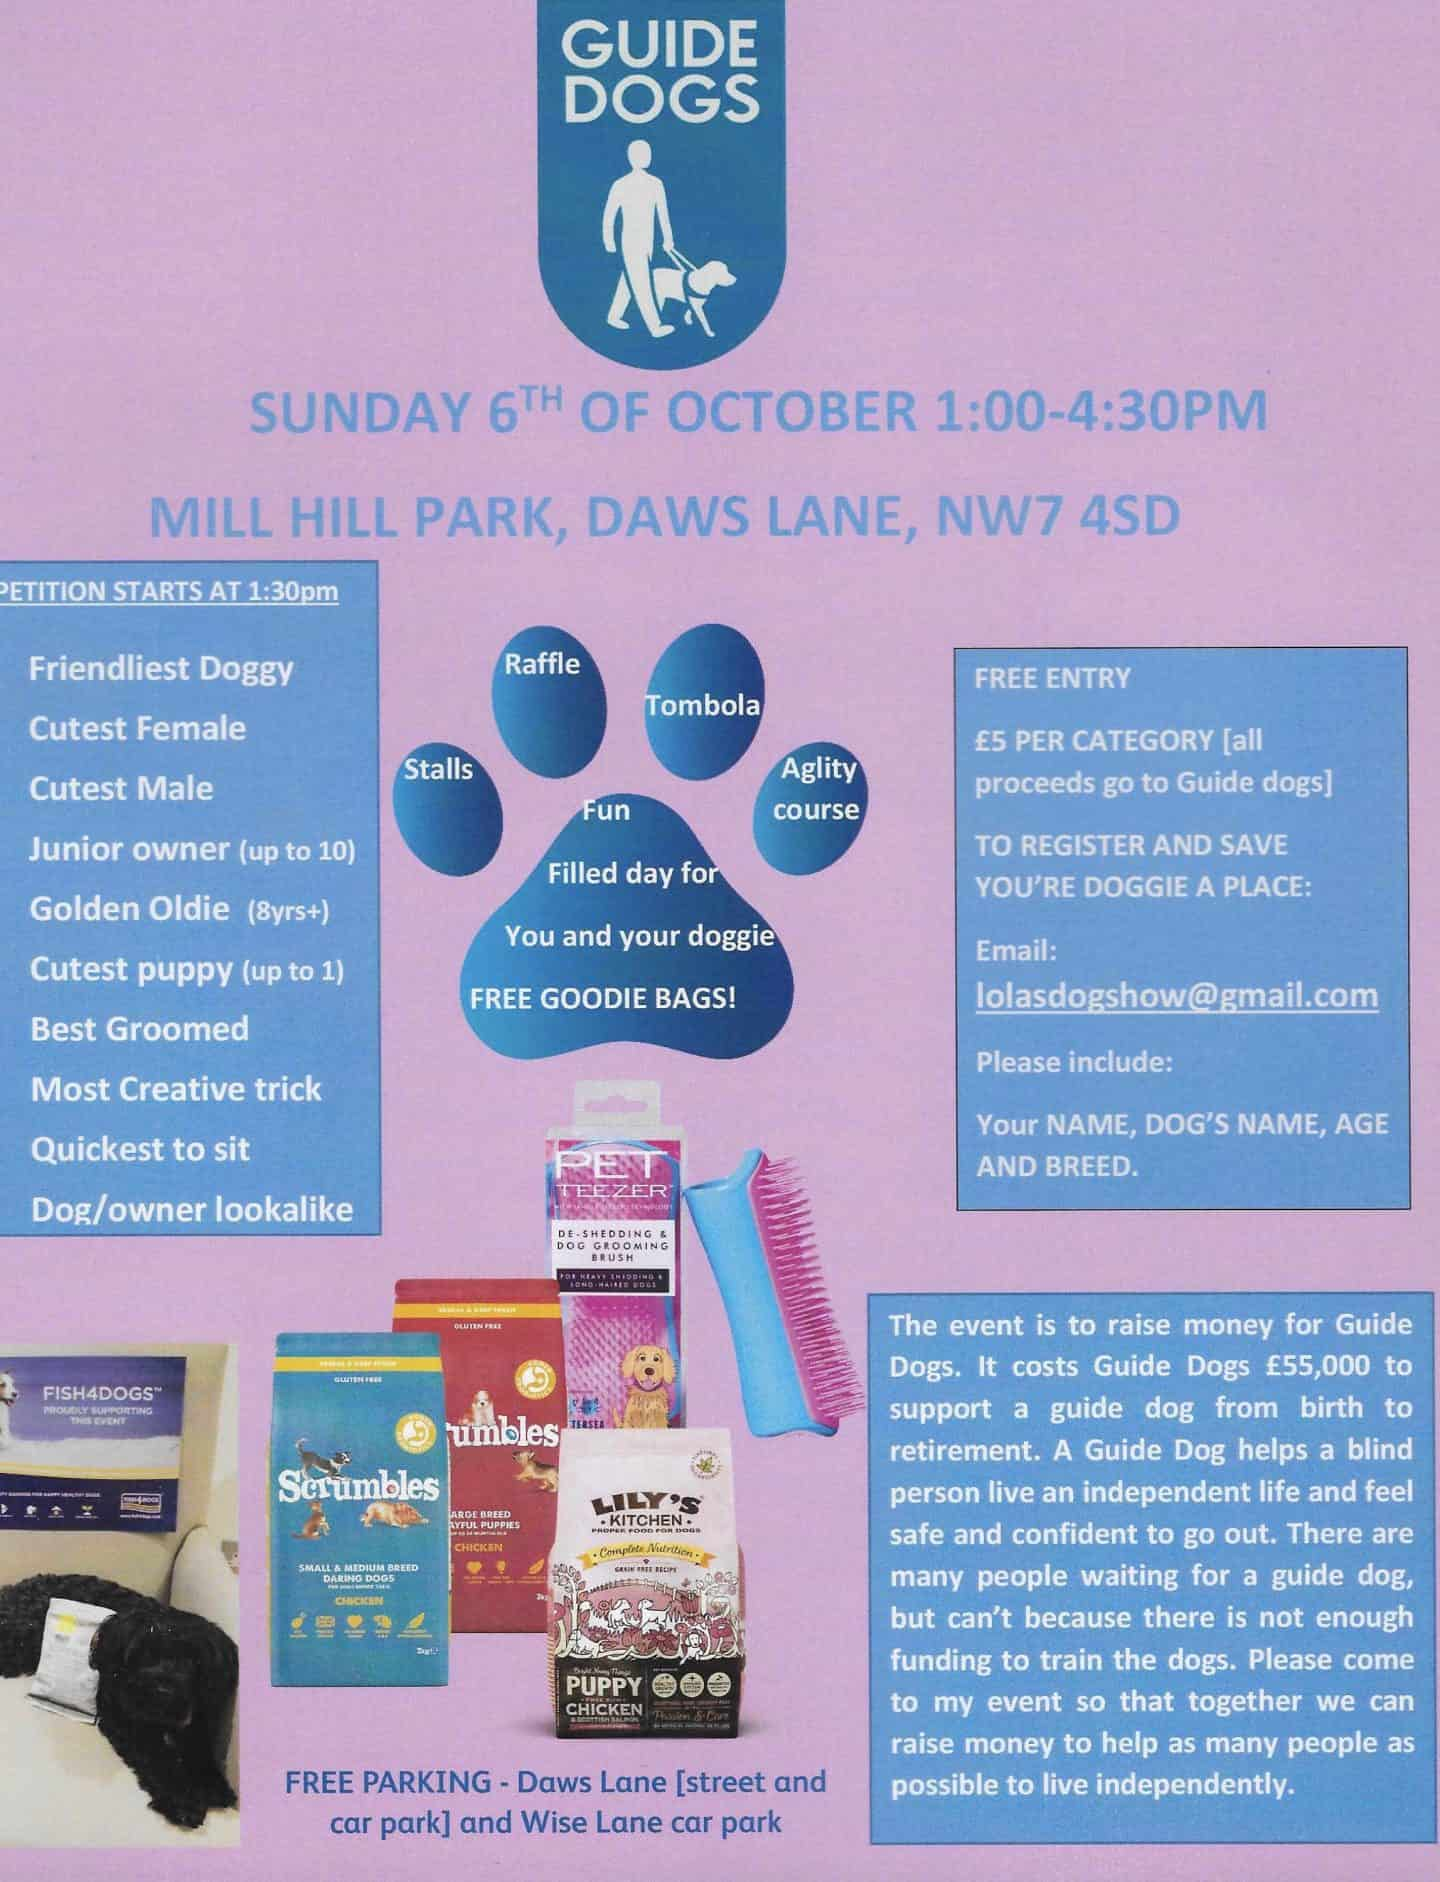 Lola's Dog Show - Guide Dogs